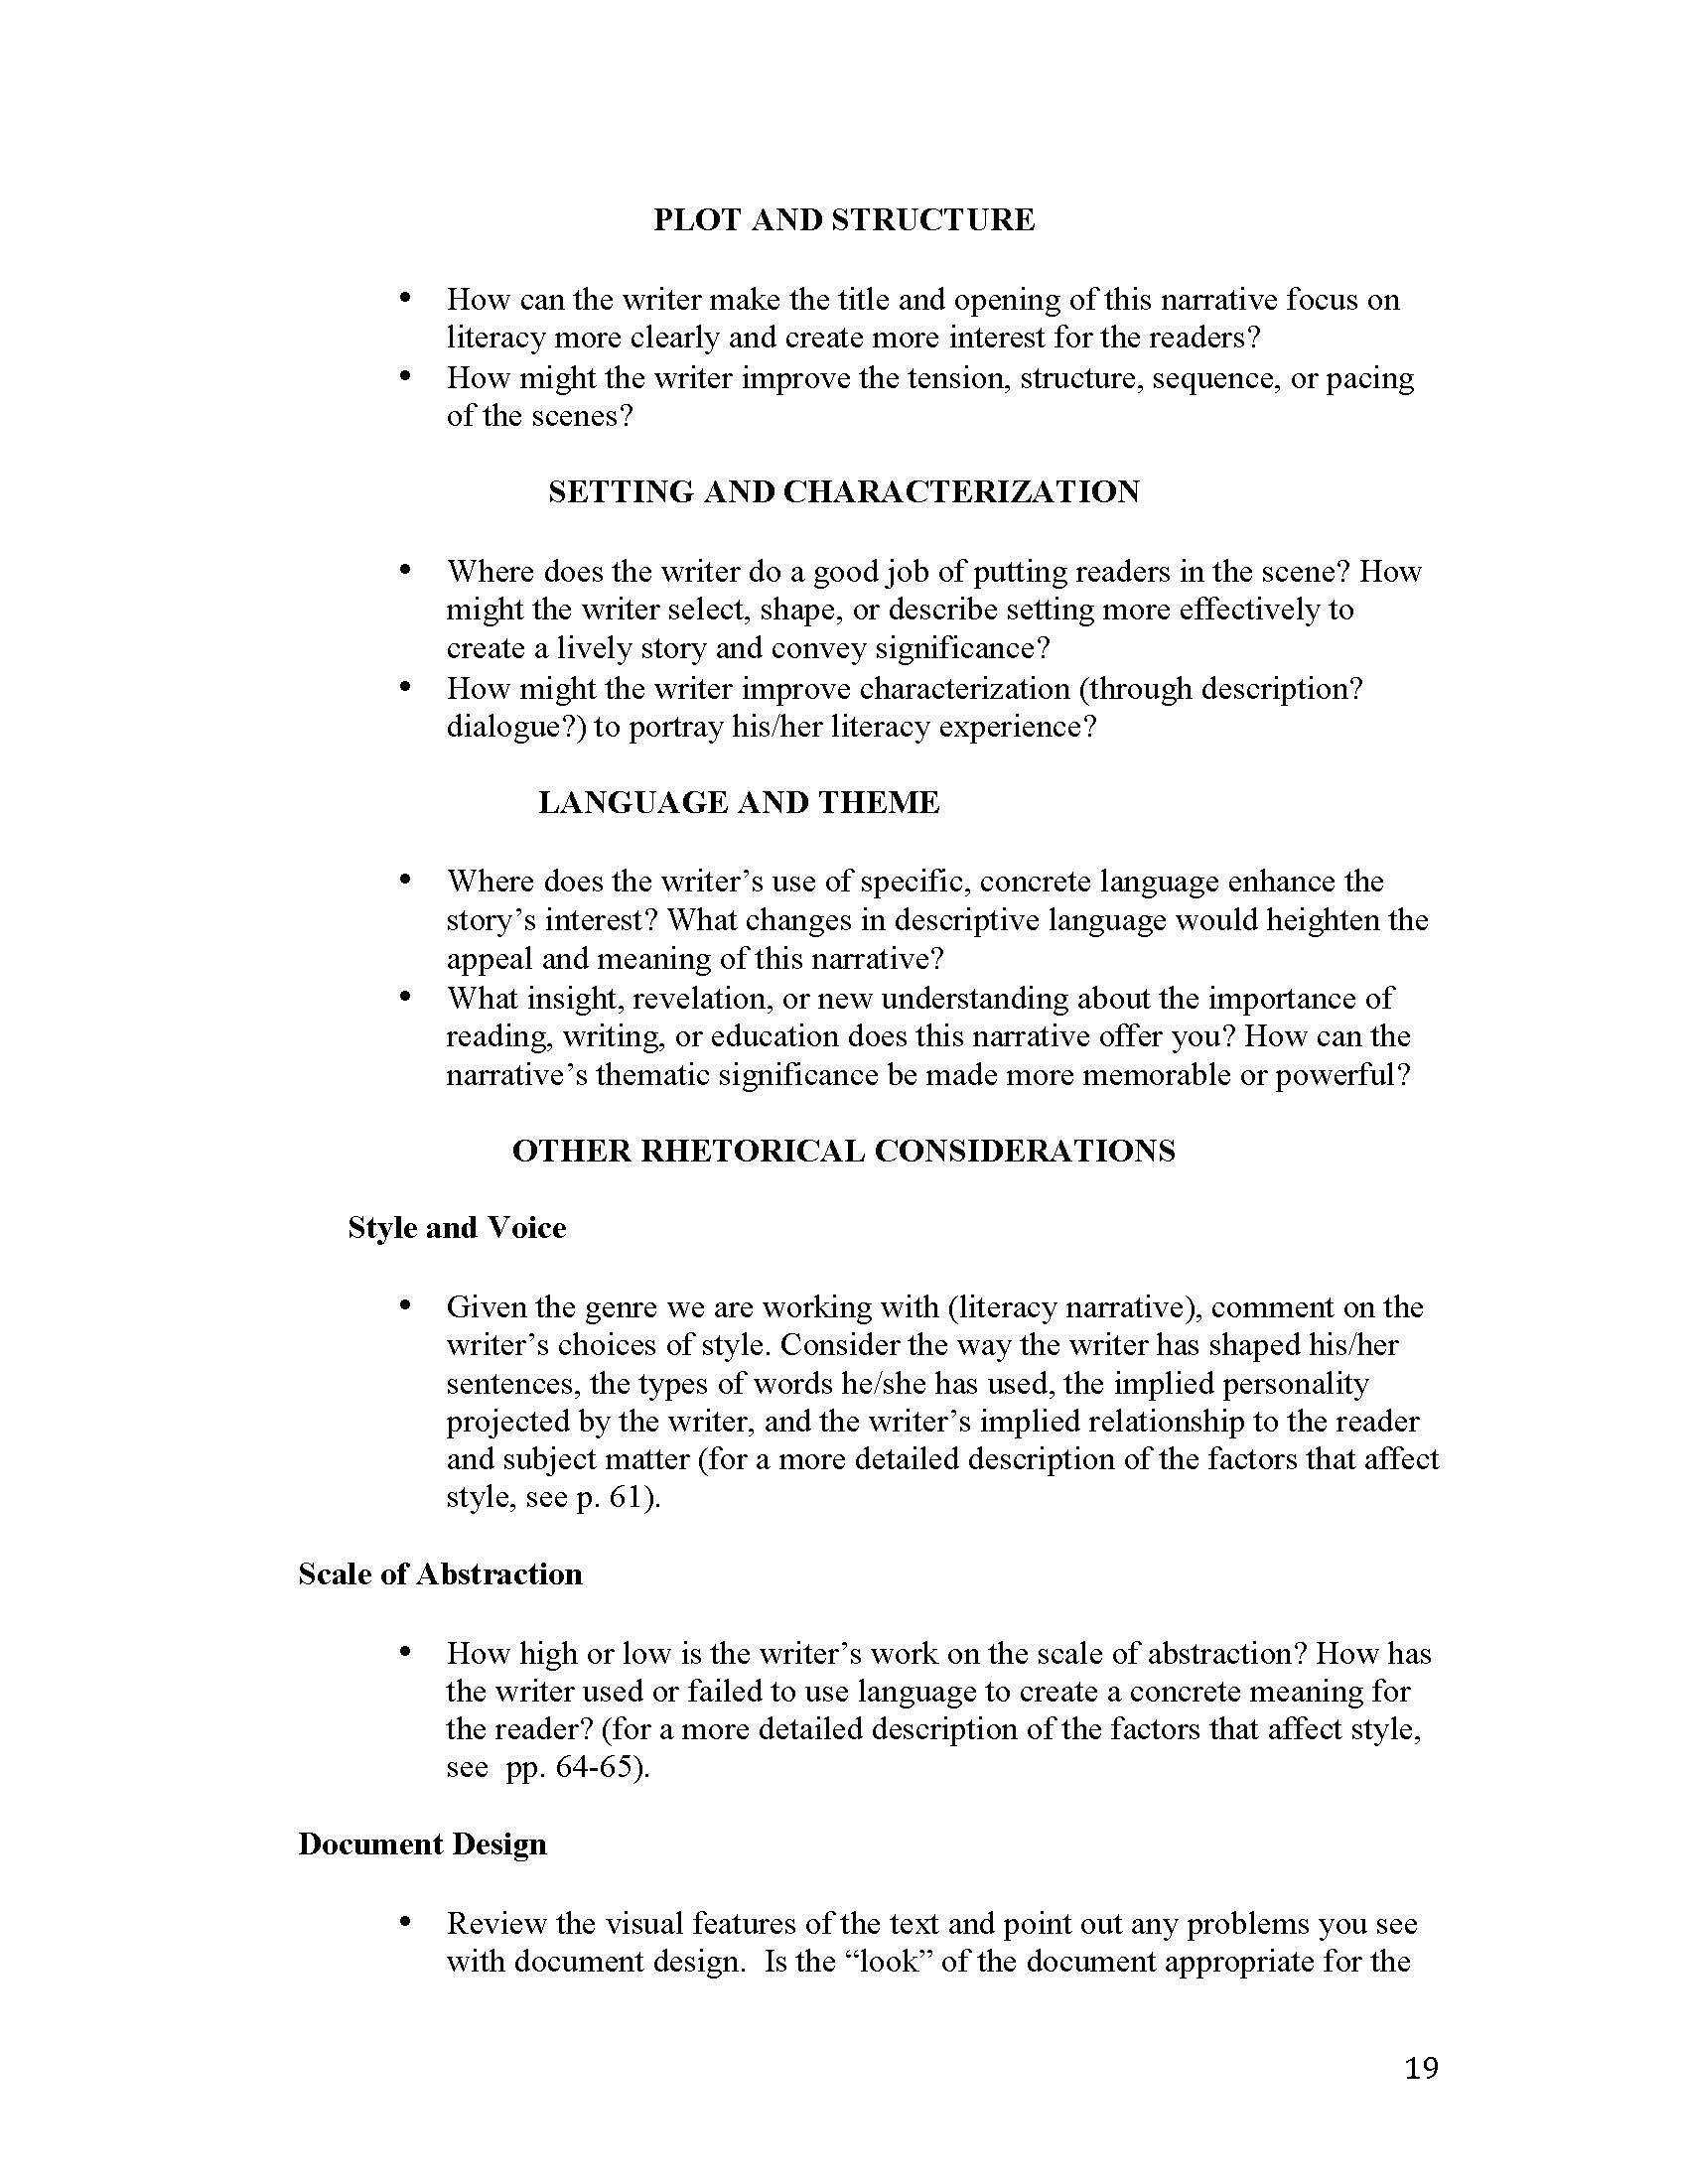 018 Argumentation Essay Example Unit 1 Literacy Narrative Instructor Copy Page 19 Dreaded Argumentative Conclusion Sentence Starters Introduction Format 9th Grade Full